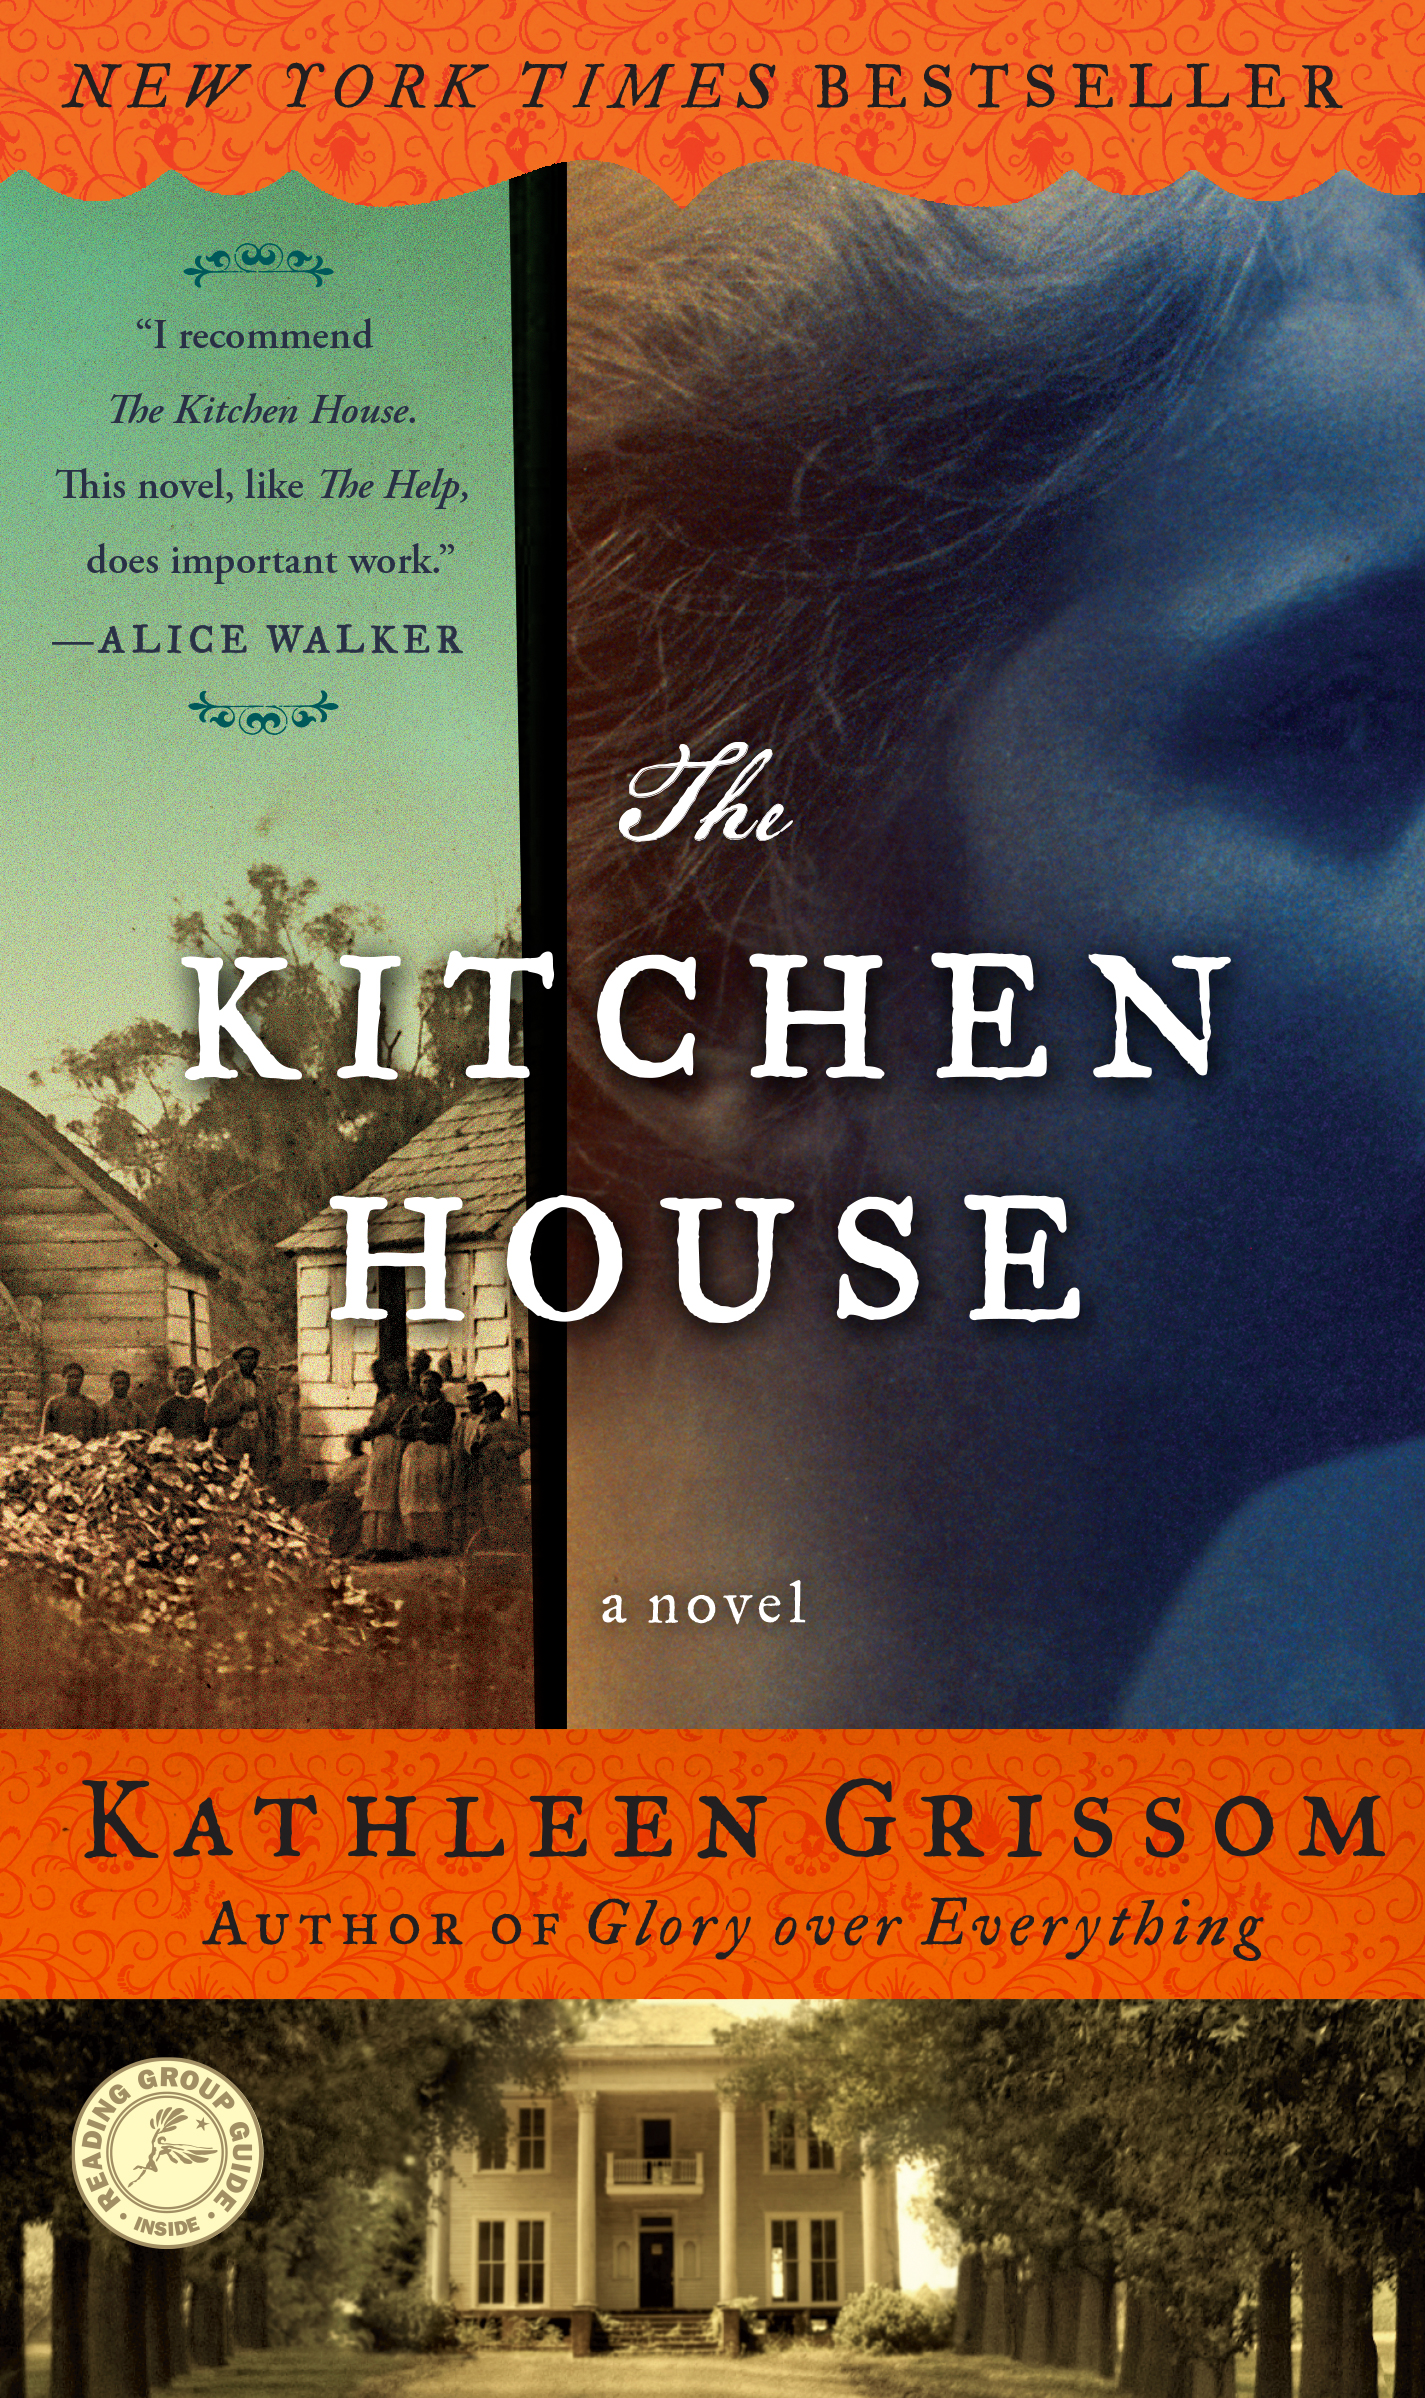 Goodreads Review The Kitchen House